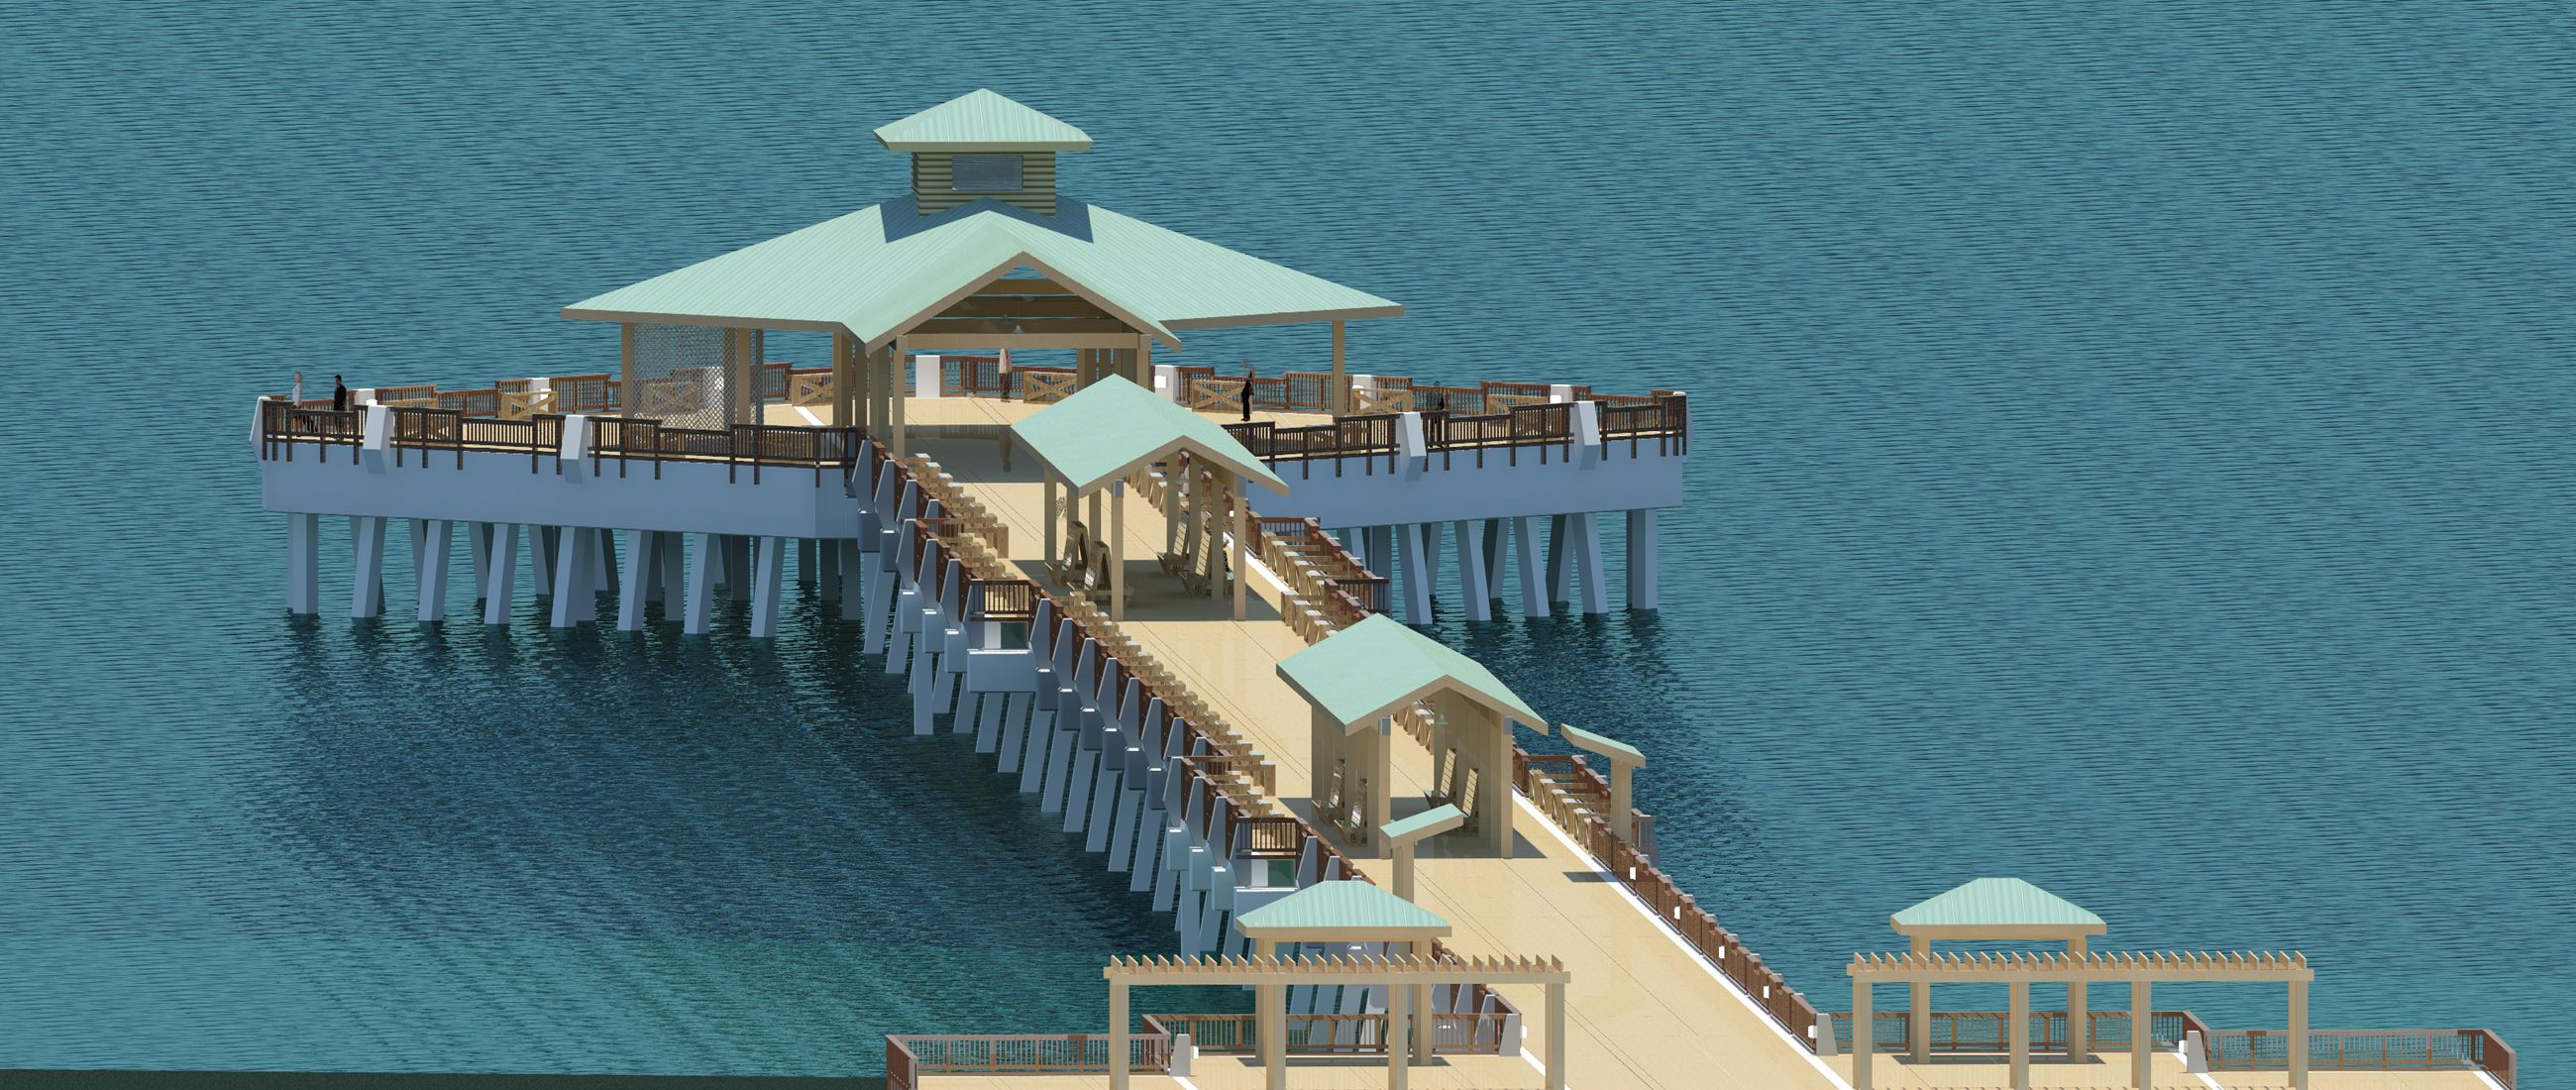 Digital rendering for the replacement Folly Beach Pier